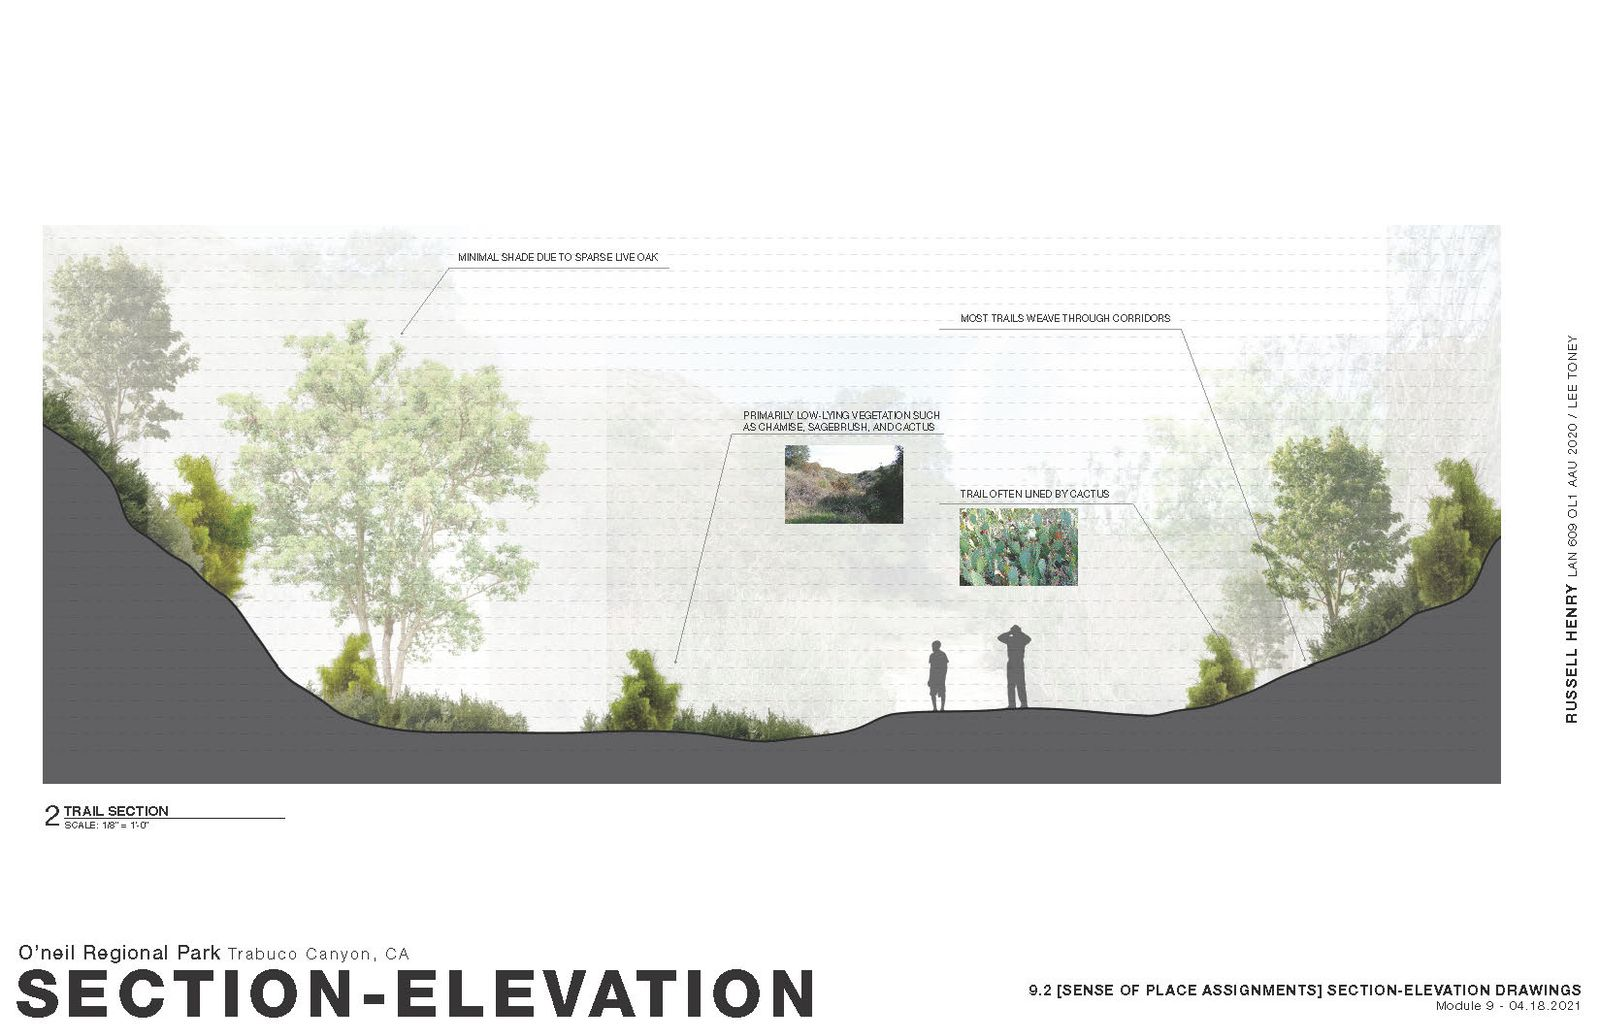 Sense of Place - Section-Elevation 2